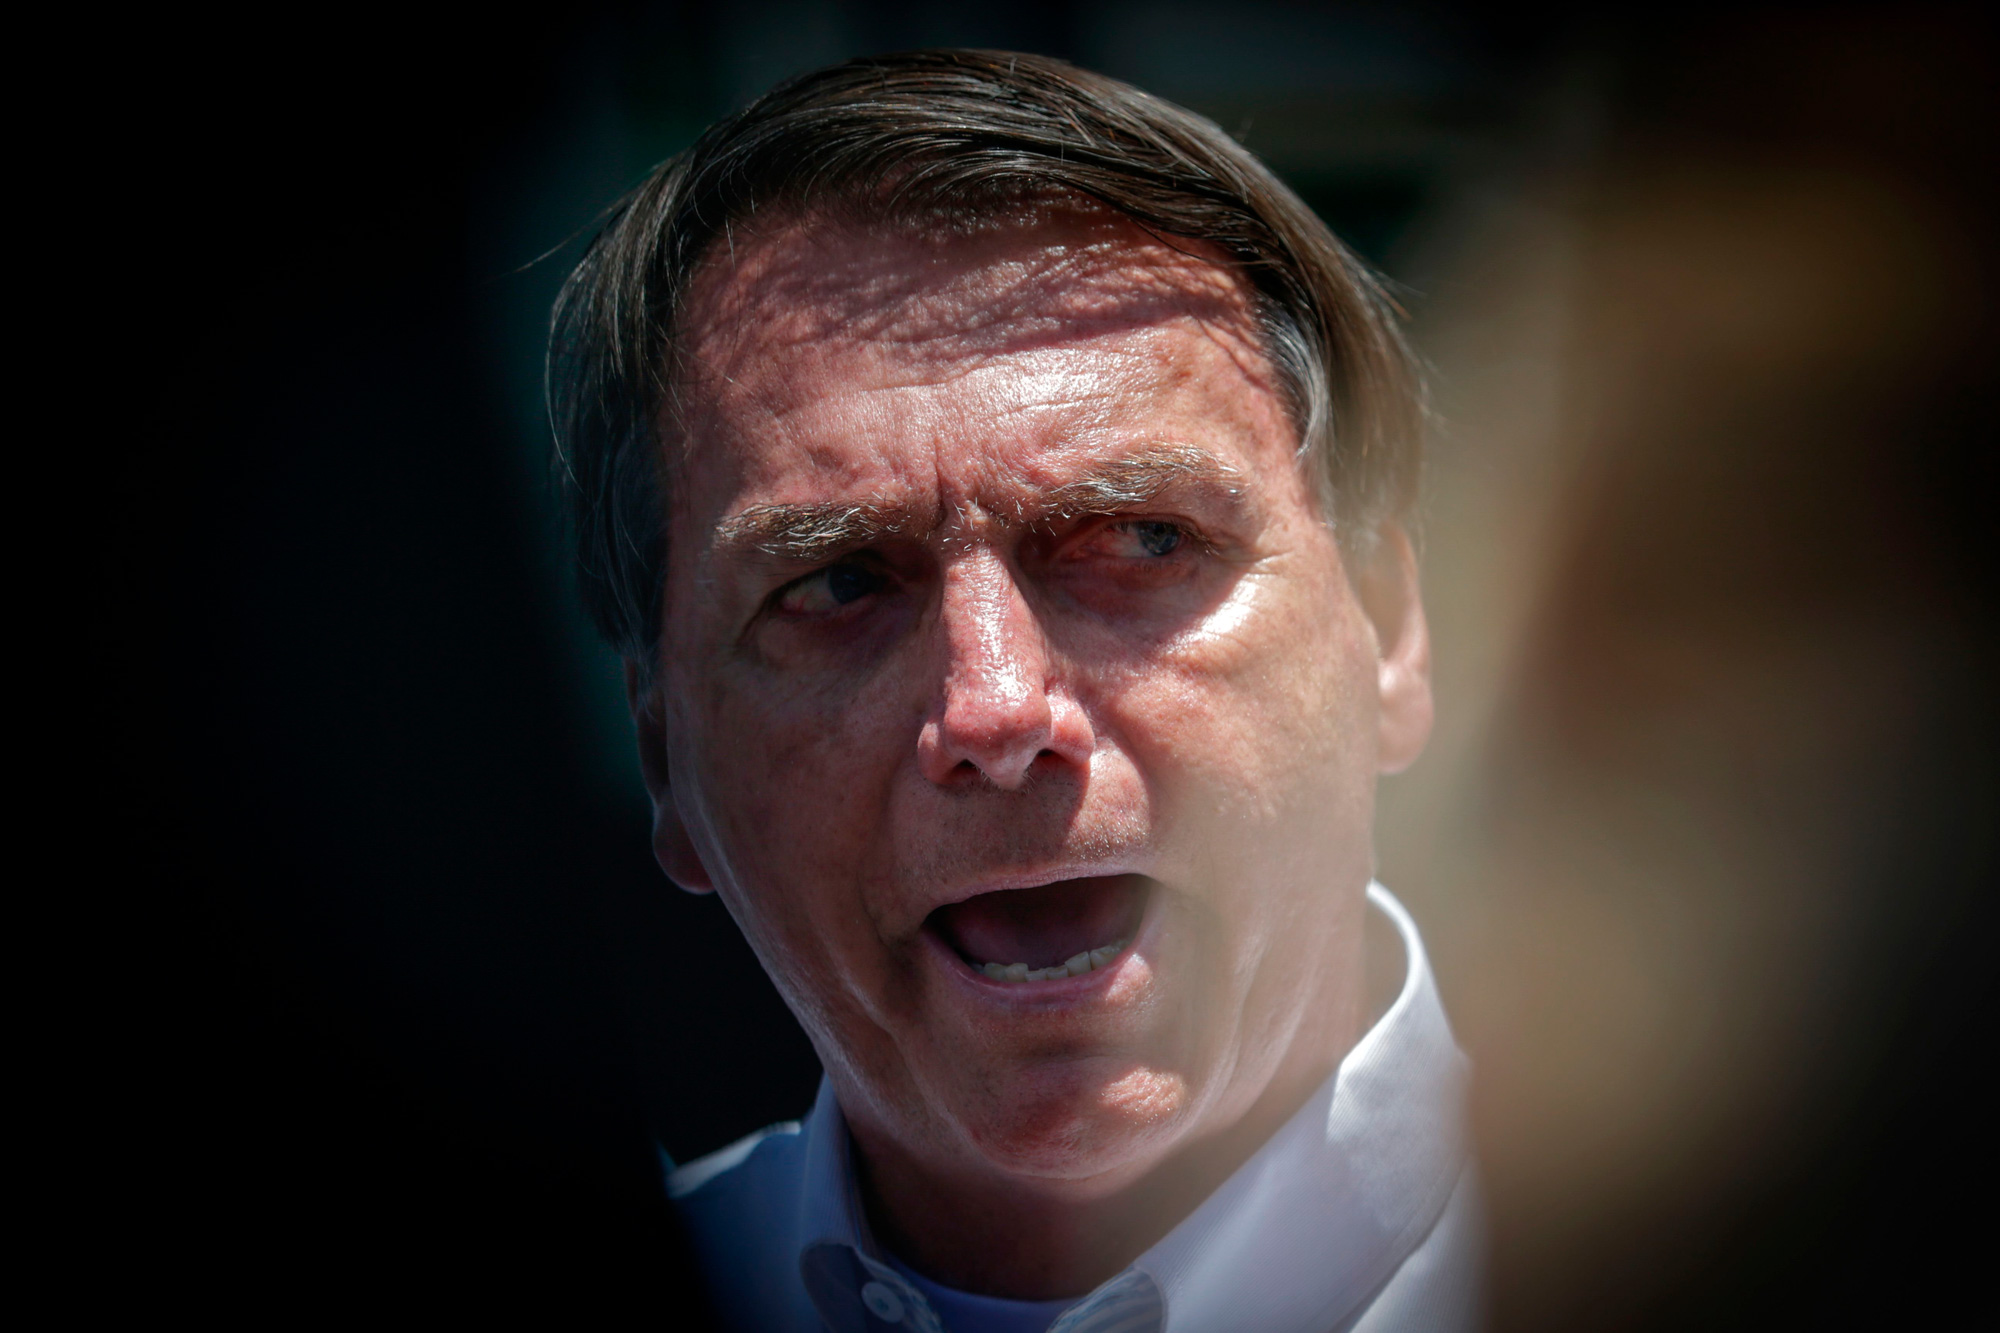 Brazilian President Jair Bolsonaro speaks to the press after voting during the second round of municipal elections at the Rosa da Fonseca Municipal School, in the Military Village, Rio de Janeiro, Brazil, on November 29, 2020. - Brazilians go to the polls Sunday to chose mayors in 57 cities, including Sao Paulo and Rio de Janeiro, the most rich and populated, in a runoff marked by the economic crisis and an upsurge of the new coronavirus. (Photo by Andre Coelho / AFP) (Photo by ANDRE COELHO/AFP via Getty Images)